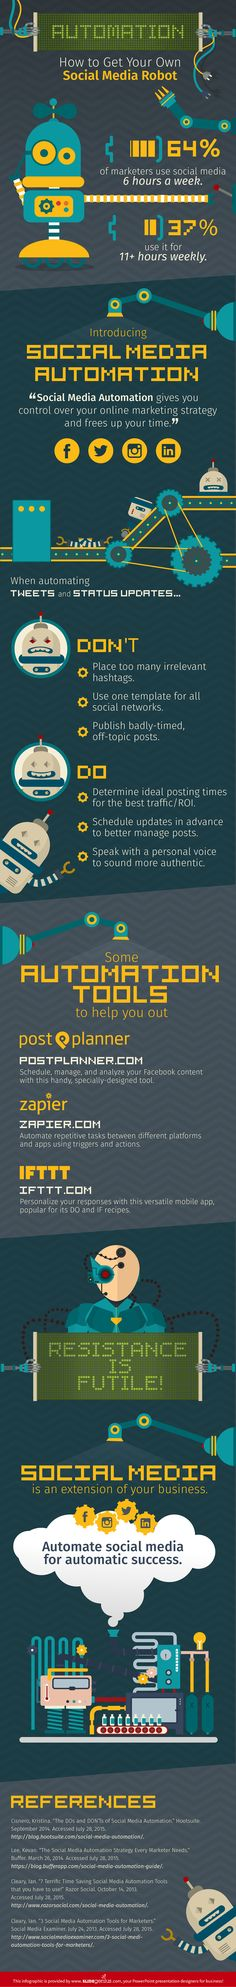 Keep yourself one step ahead by learning the do's and don'ts of automation tools with this handy infographic